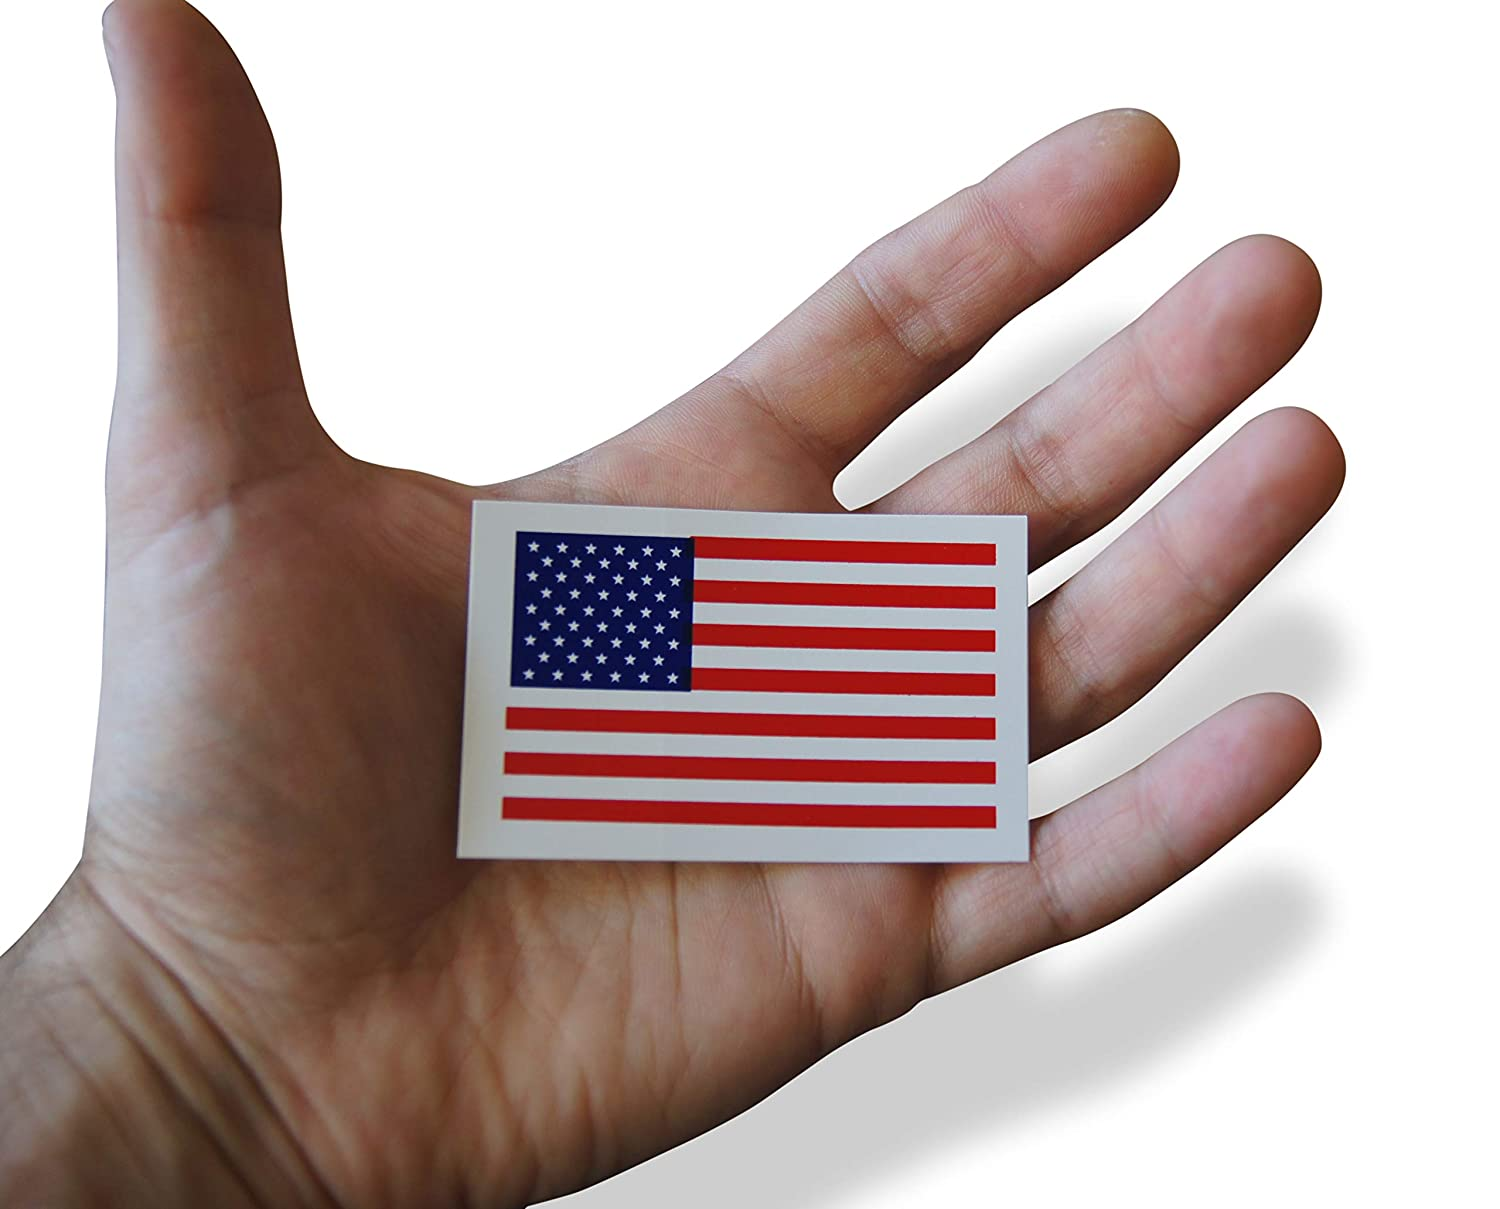 Oval /& American Flag Patriotic Military Vinyl Sticker Set Includes Circular Design in Classic Red 12 Pieces White Blue US Novel Merk U.S.A